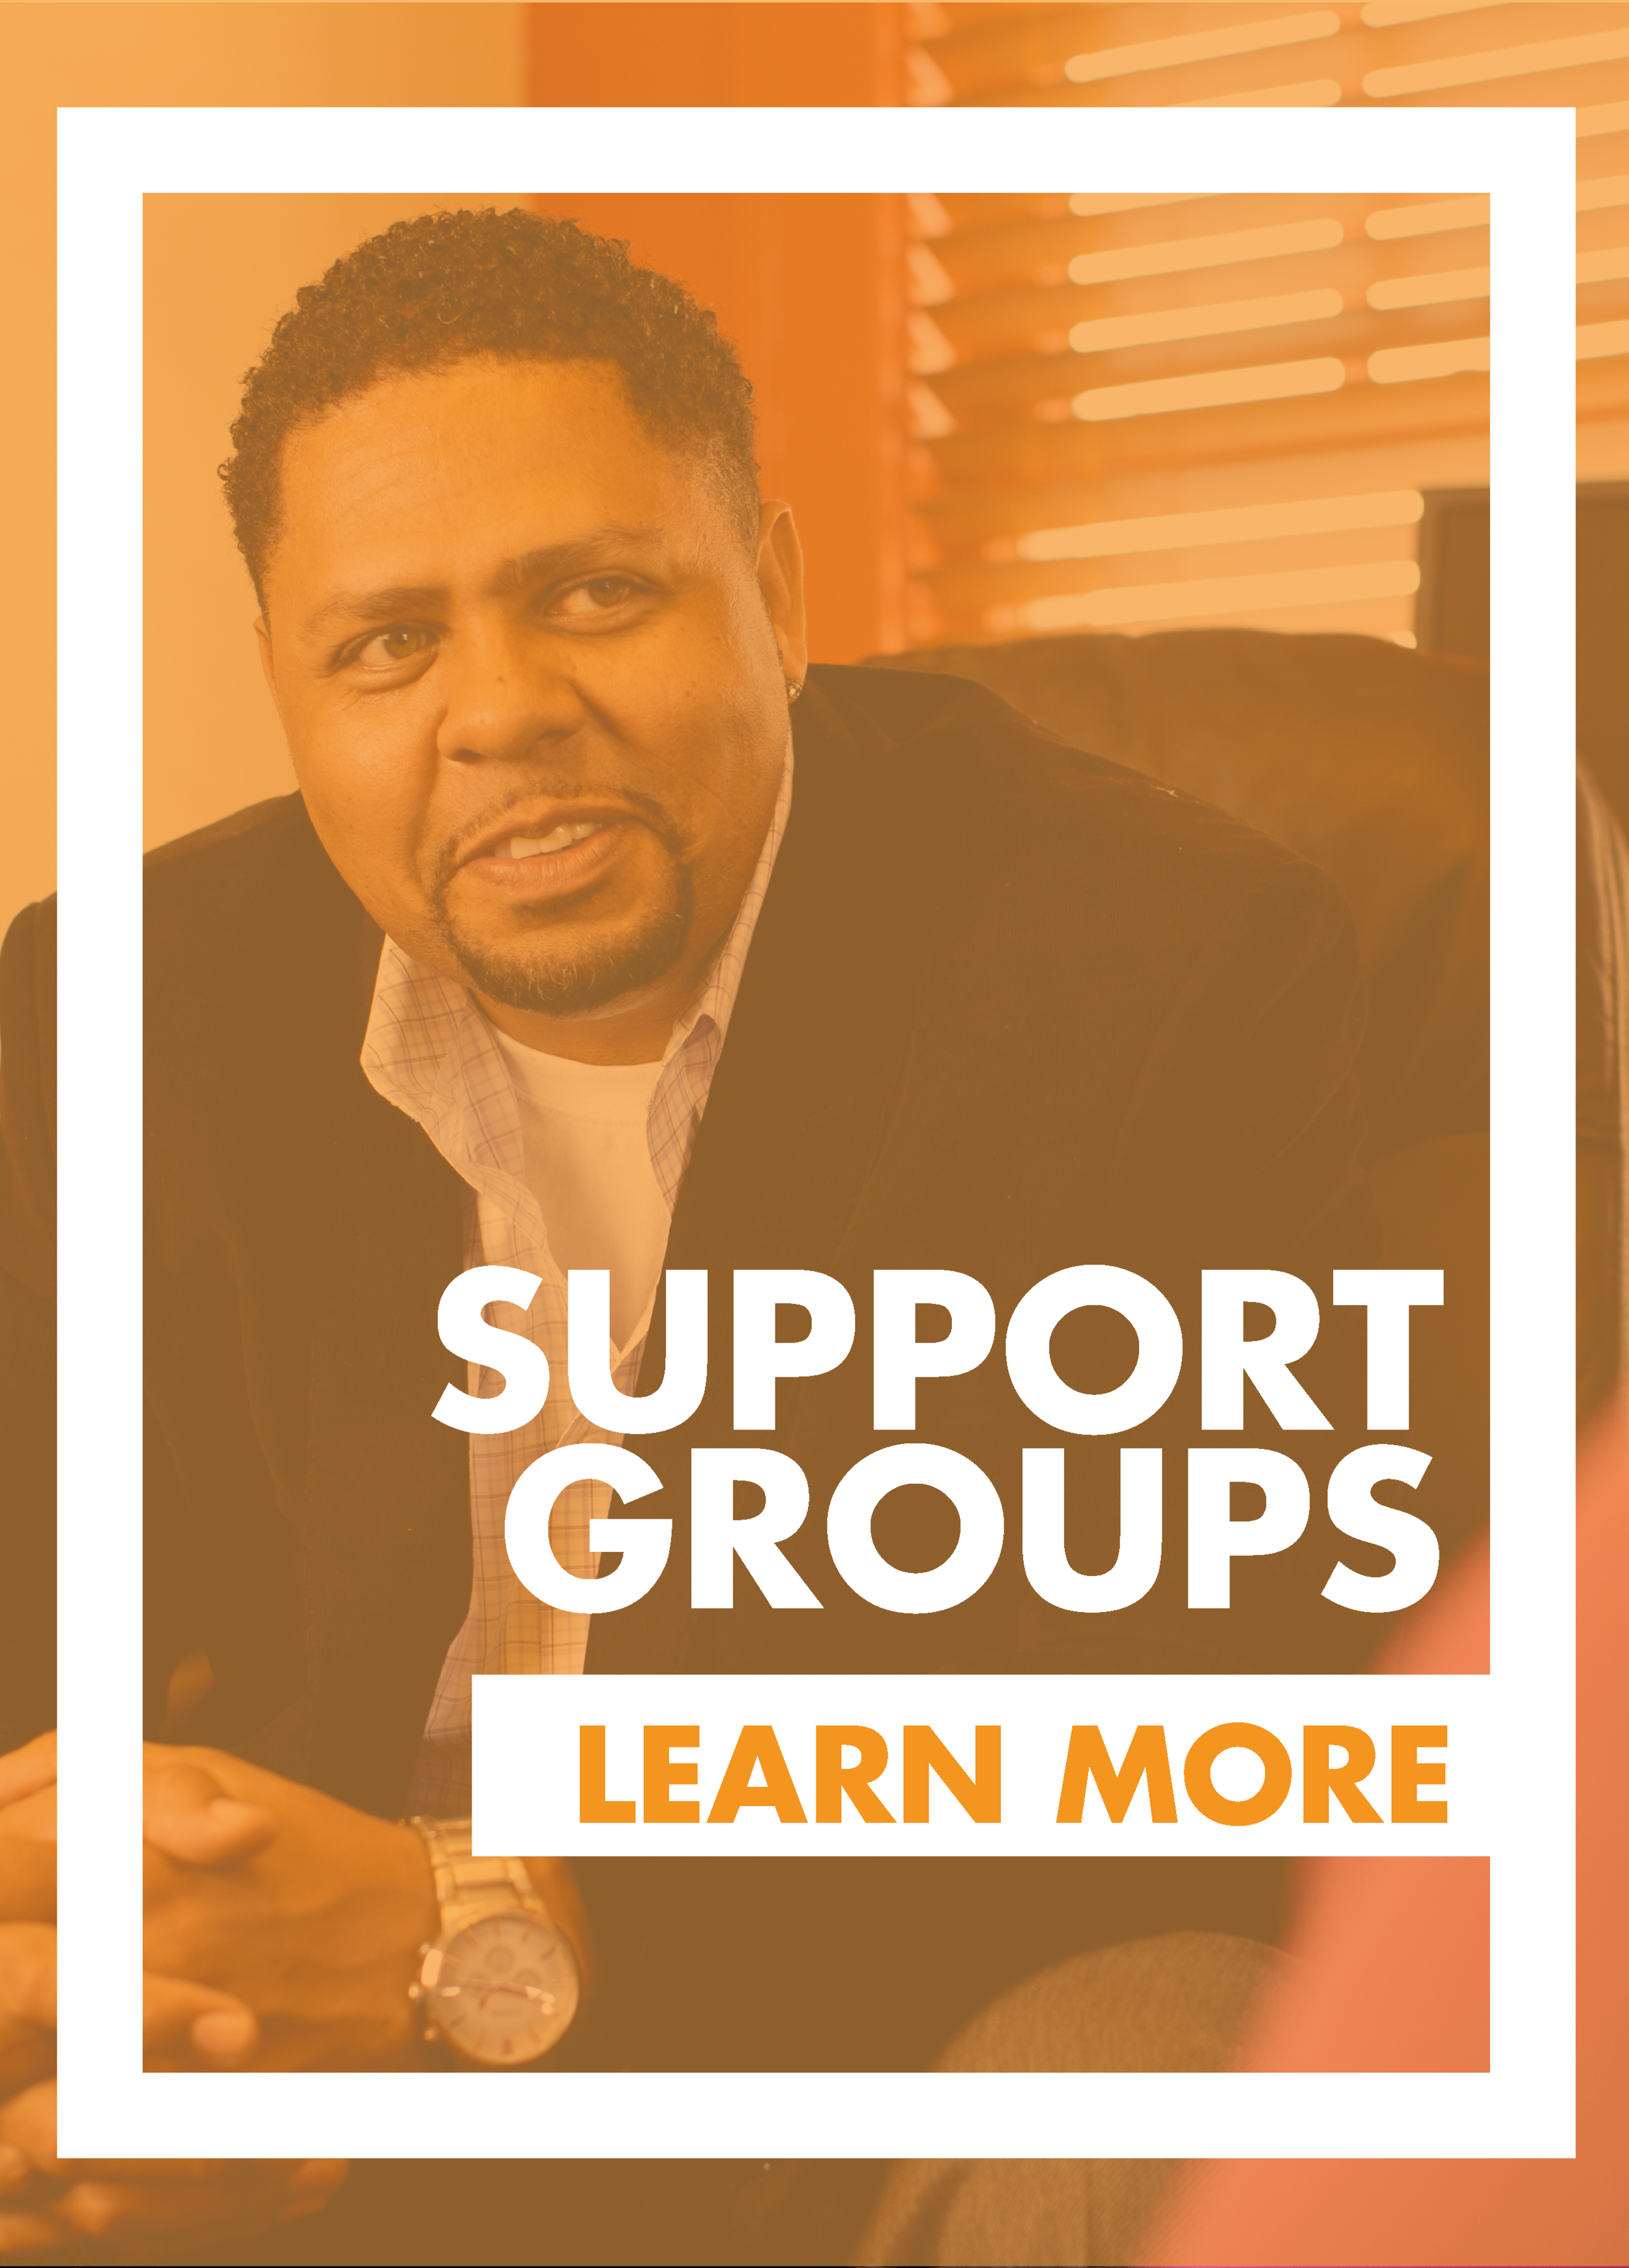 Support Groups in Oklahoma